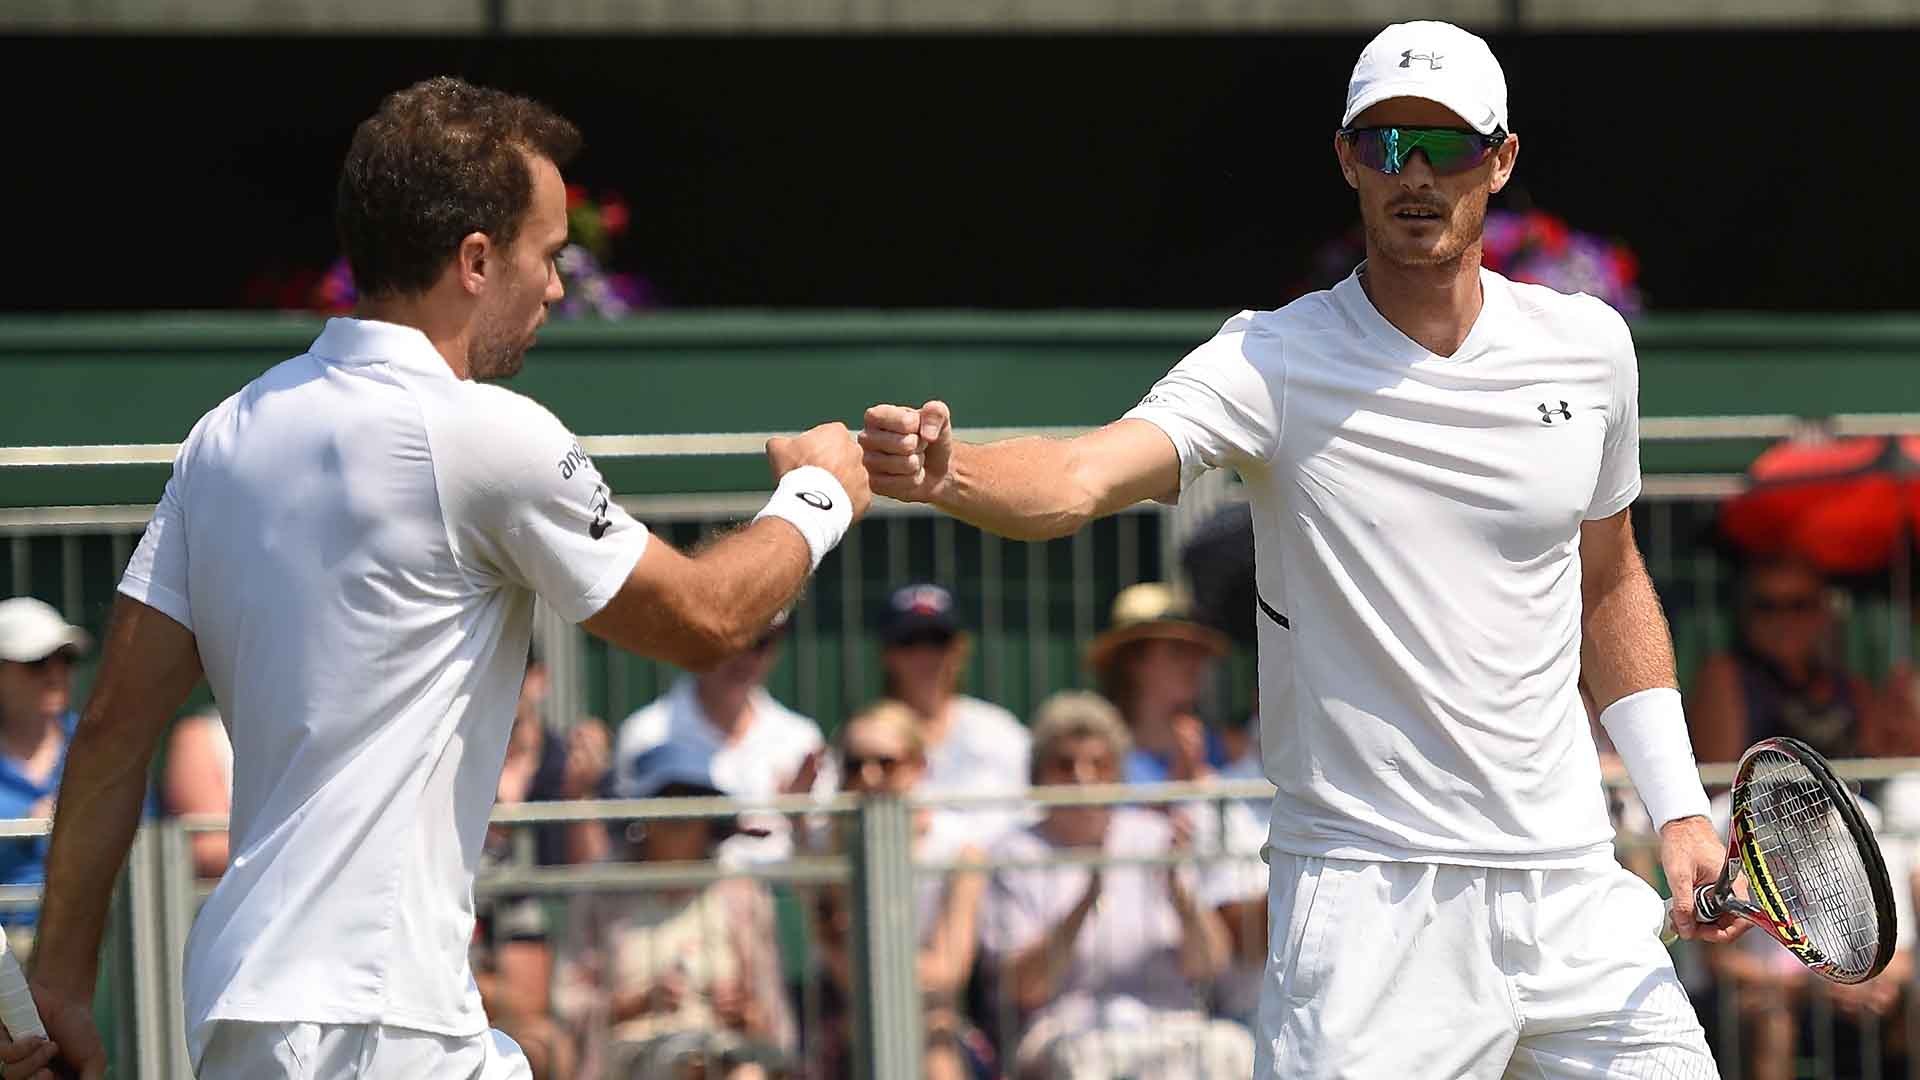 Jamie Murray and Bruno Soares advance to the third round at #Wimbledon.  Read More ▶️ https://t.co/ZnefRiVhUG https://t.co/yHYAOvrDPO